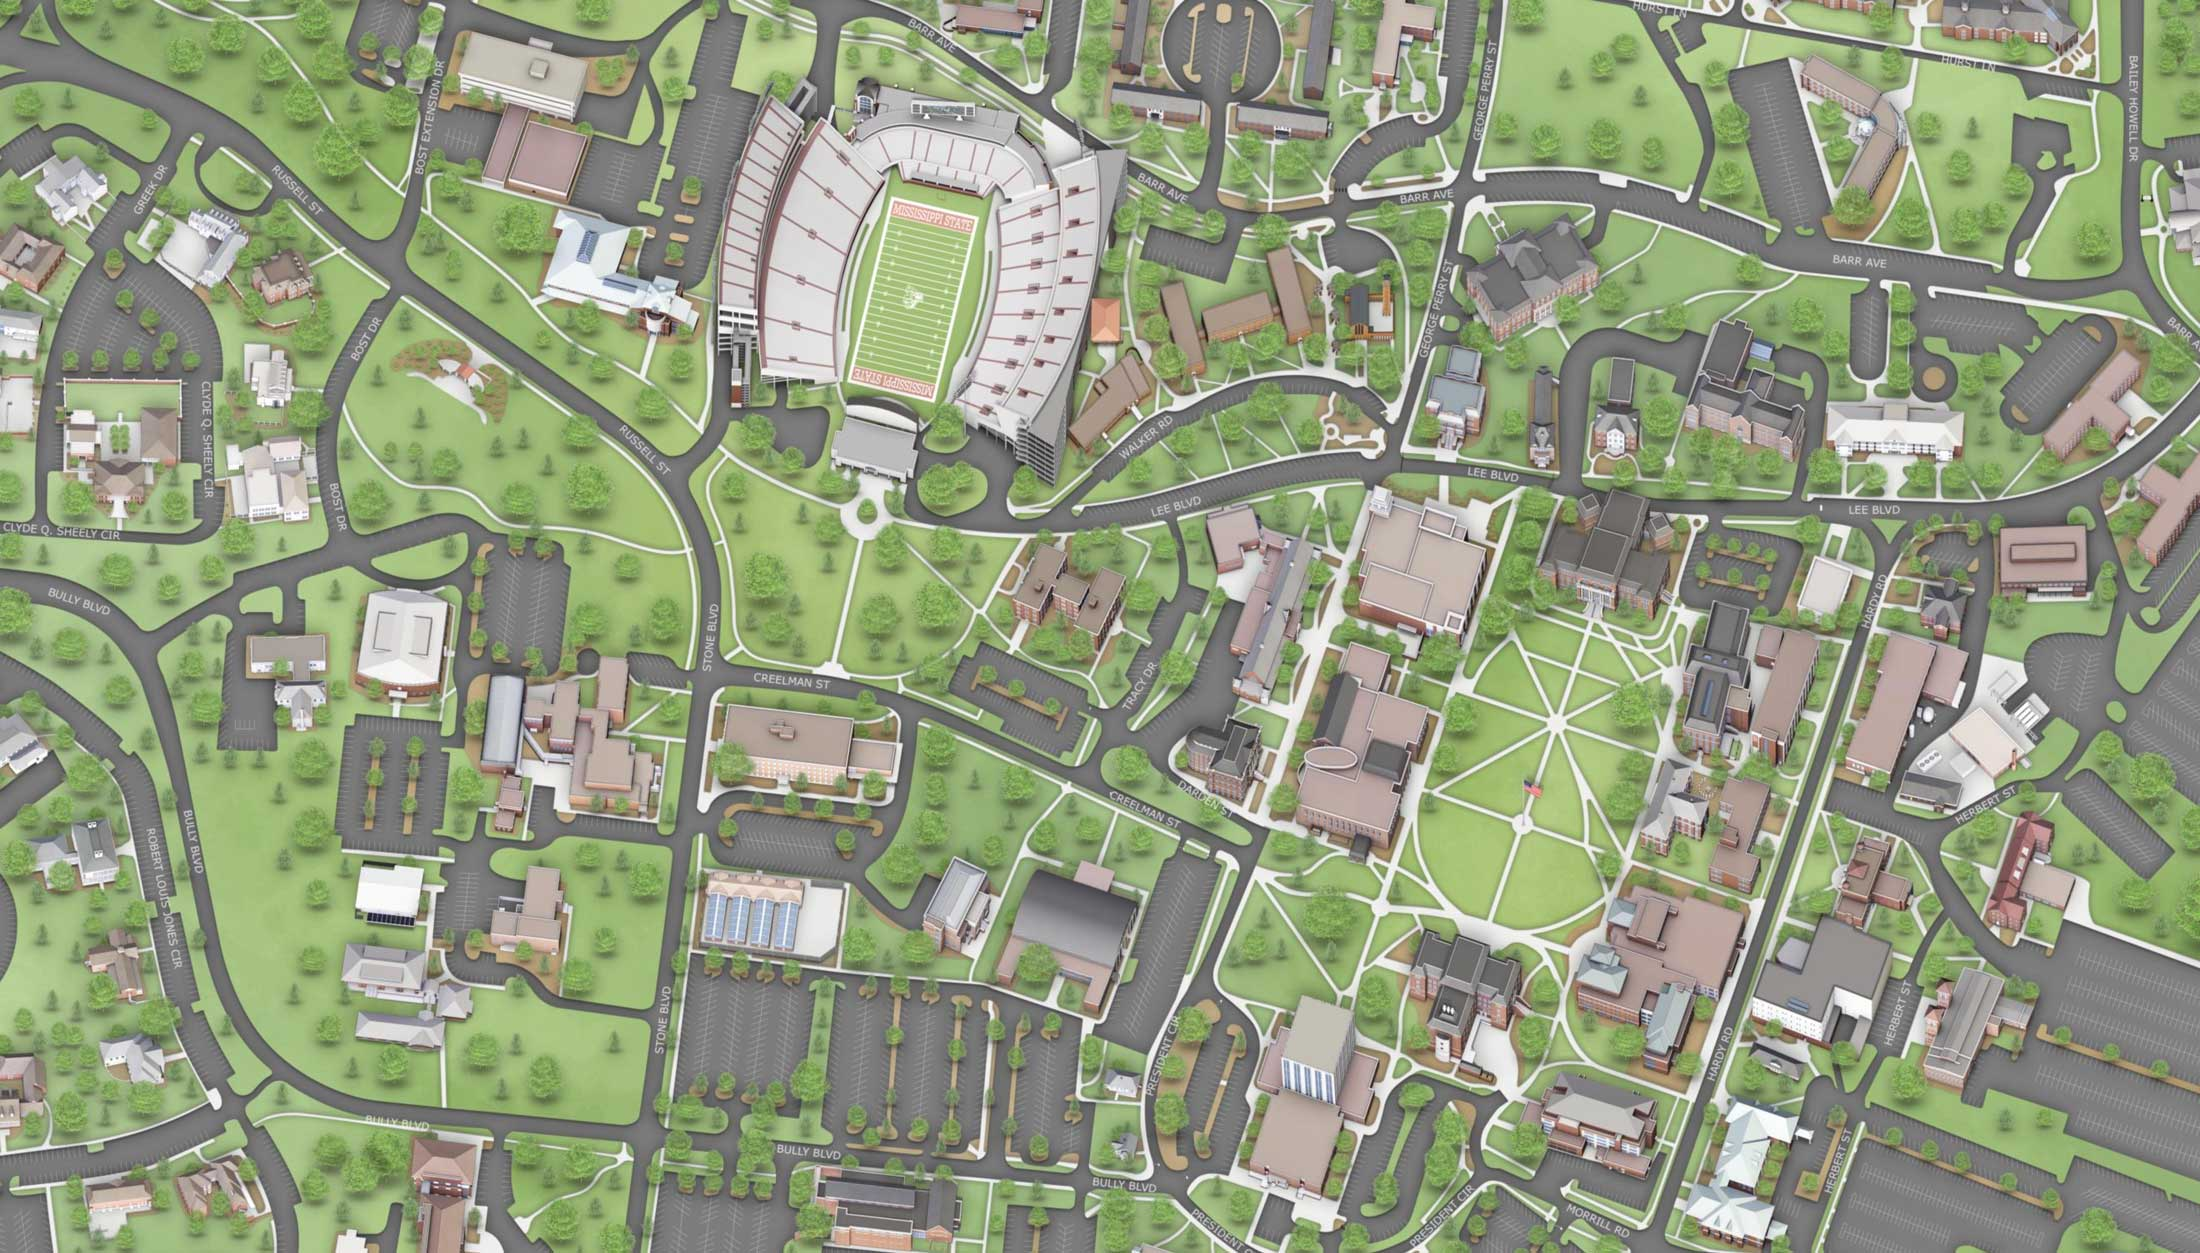 Mississippi State Campus Map Virtual Tour   Office of Admissions and Scholarships